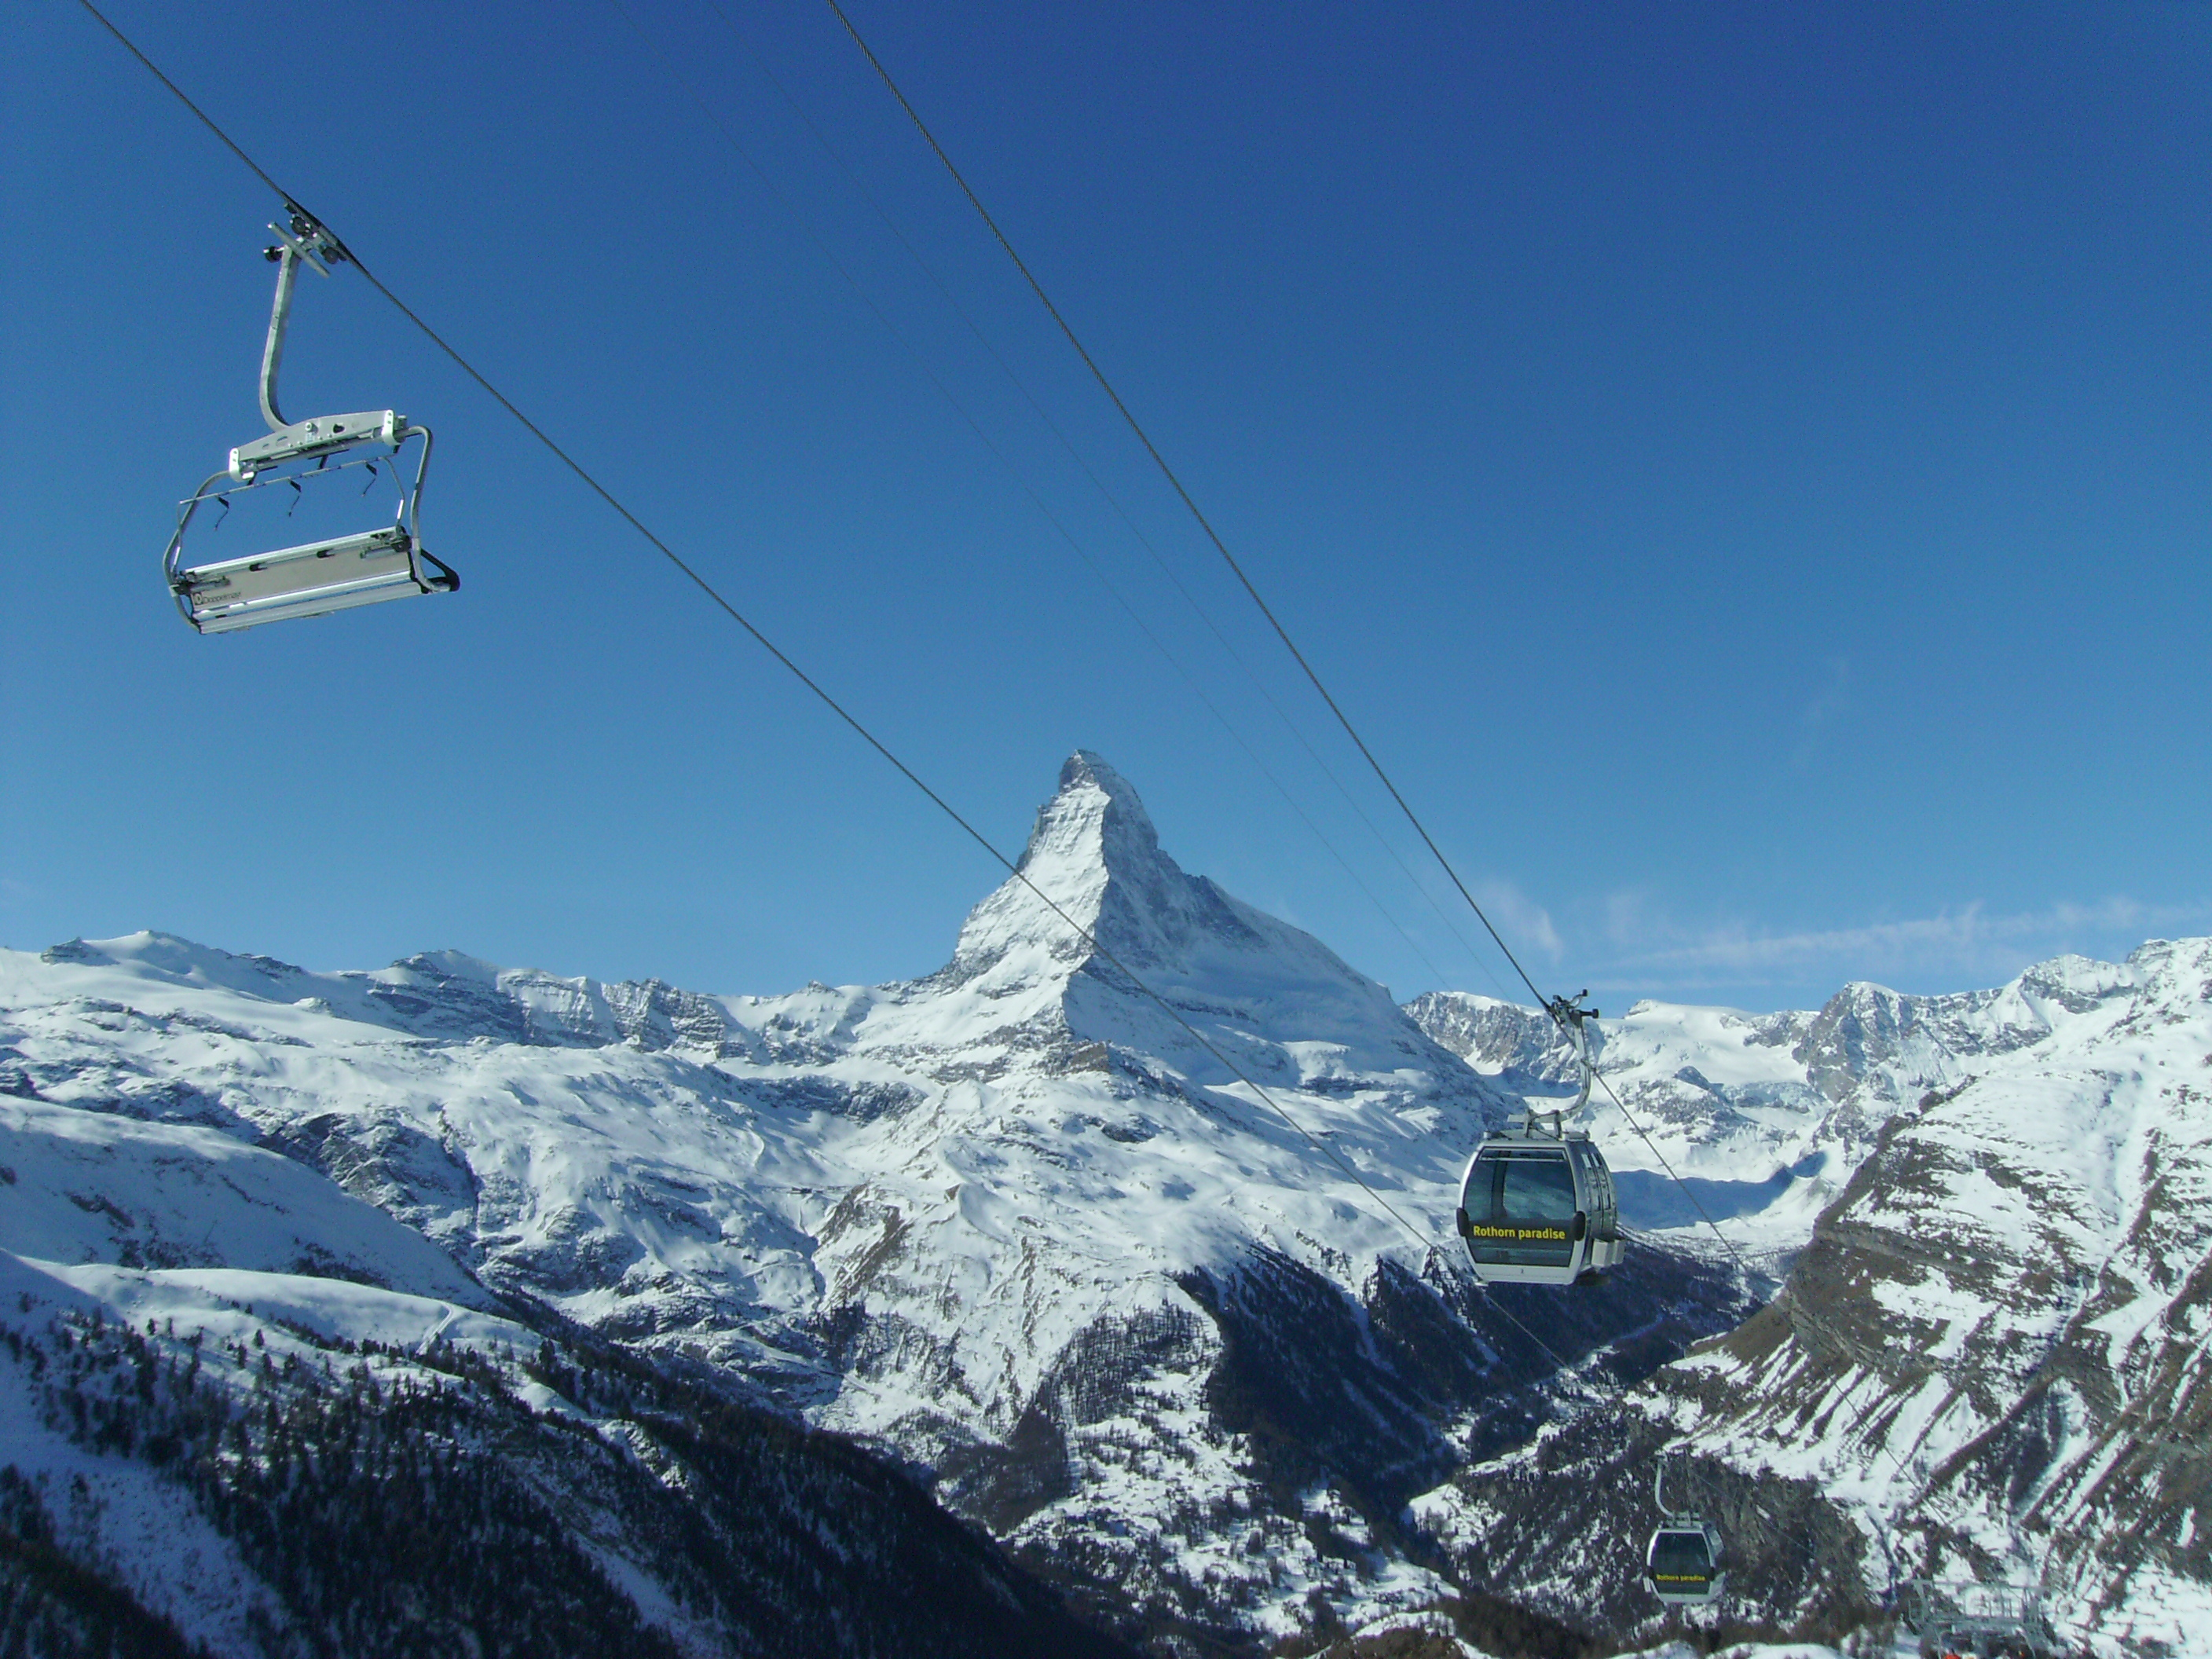 Zermatt lifts